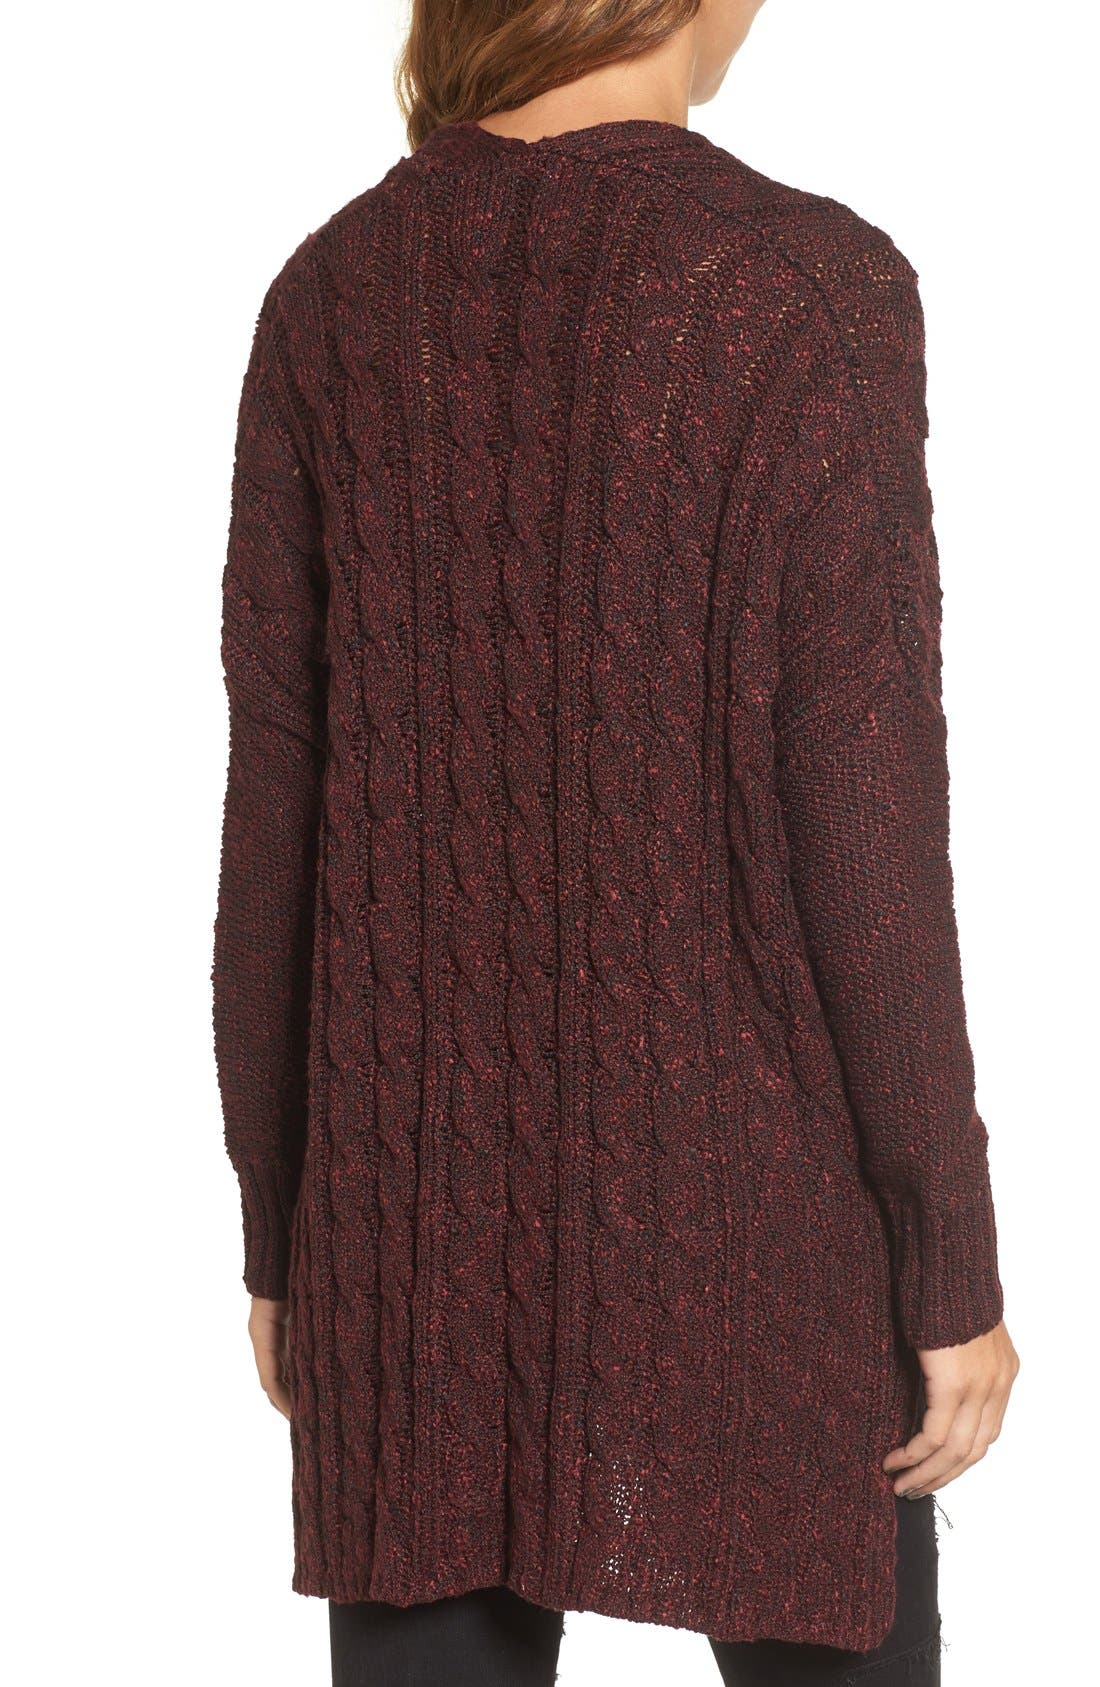 Marled Cable Knit Pullover,                             Alternate thumbnail 2, color,                             Burgundy/ Black Marl